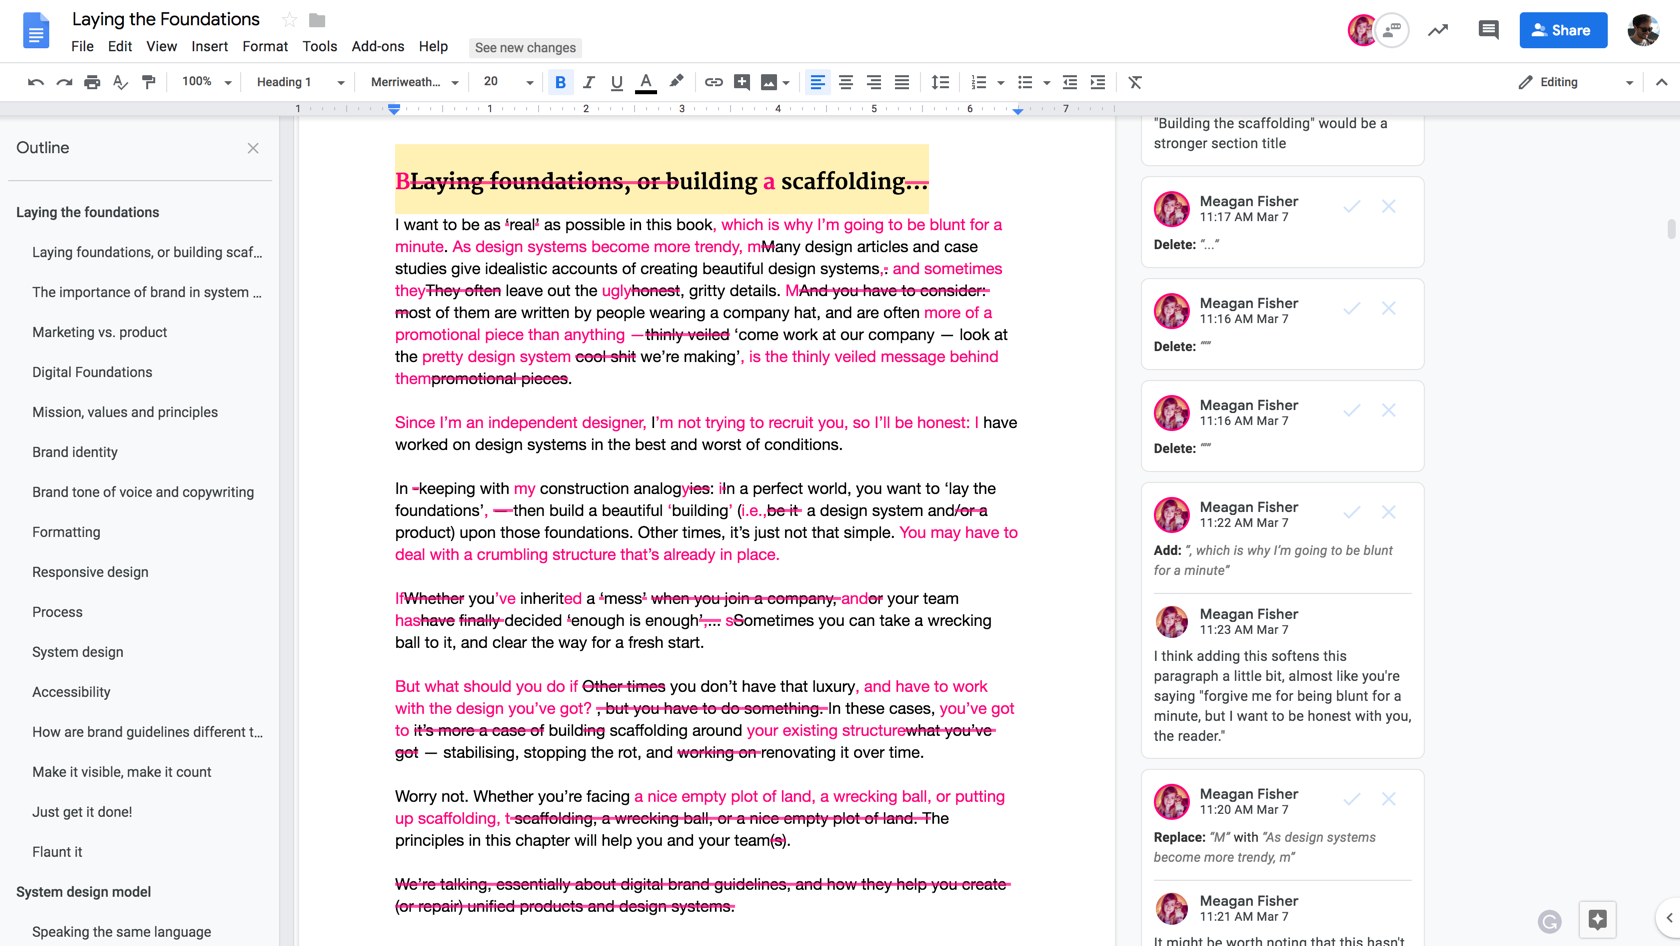 A screengrab of a Google Doc web page showing multiple edits to a large body of text